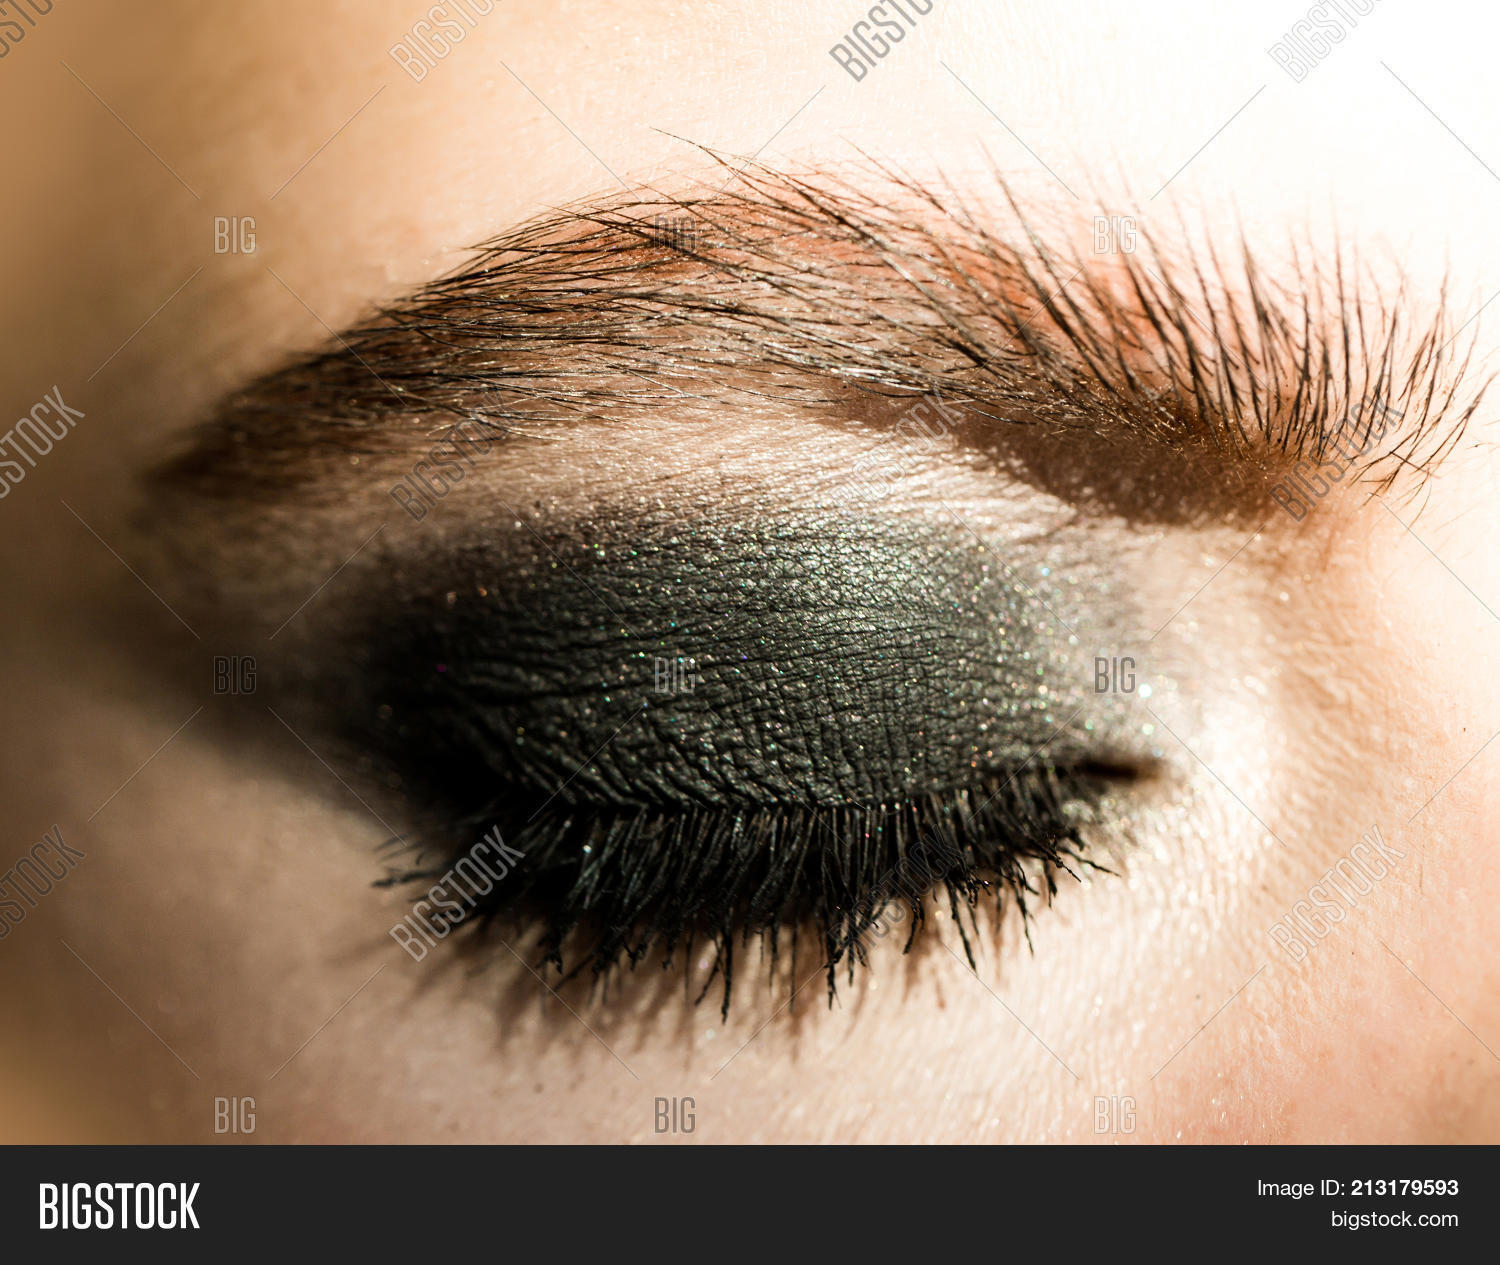 Eye Shadow Eye Makeup Image Photo Free Trial Bigstock